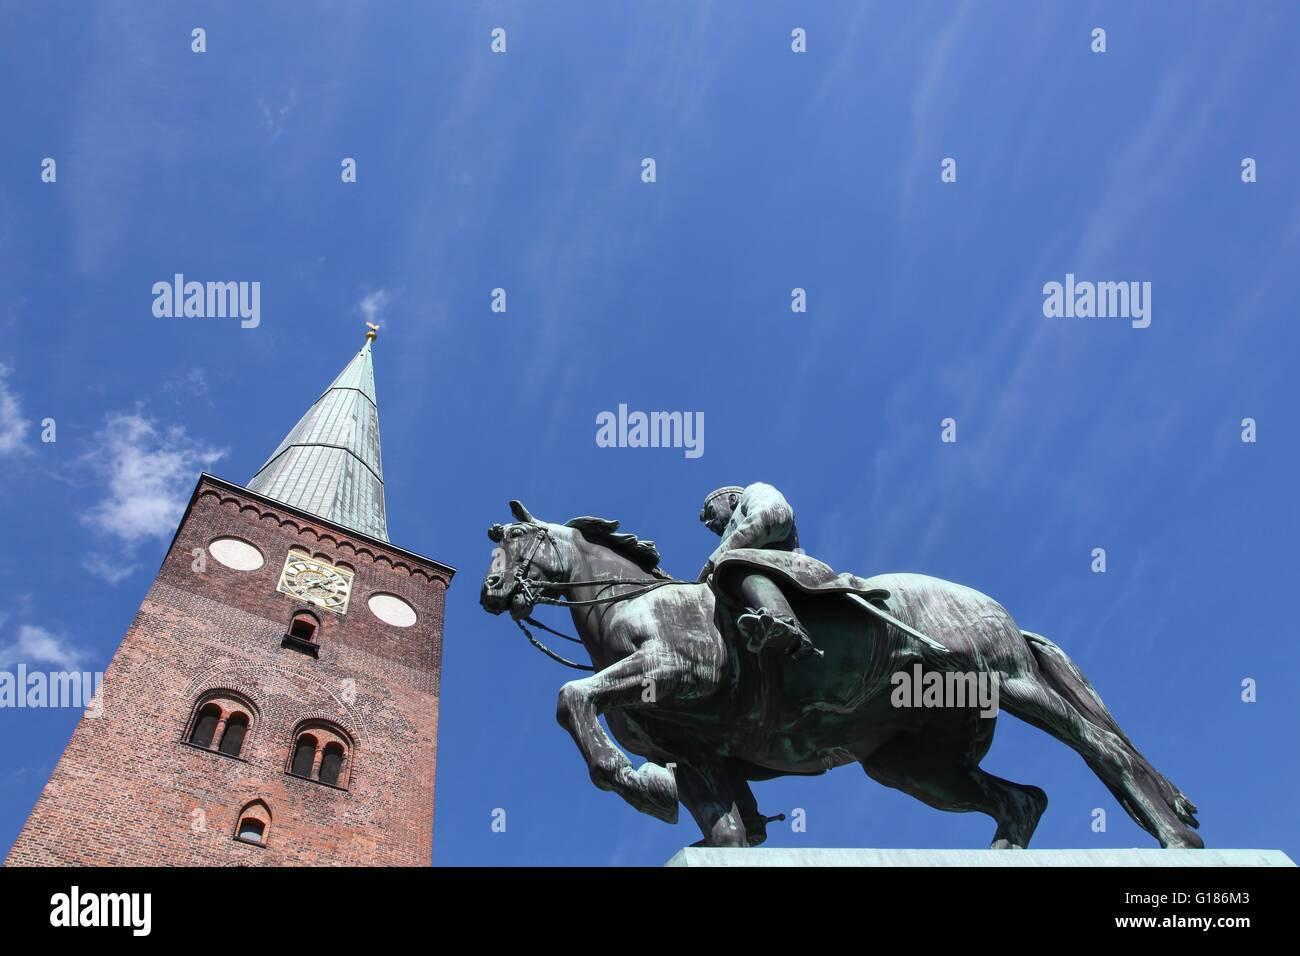 Cathedral of Aarhus, Denmark - Stock Image